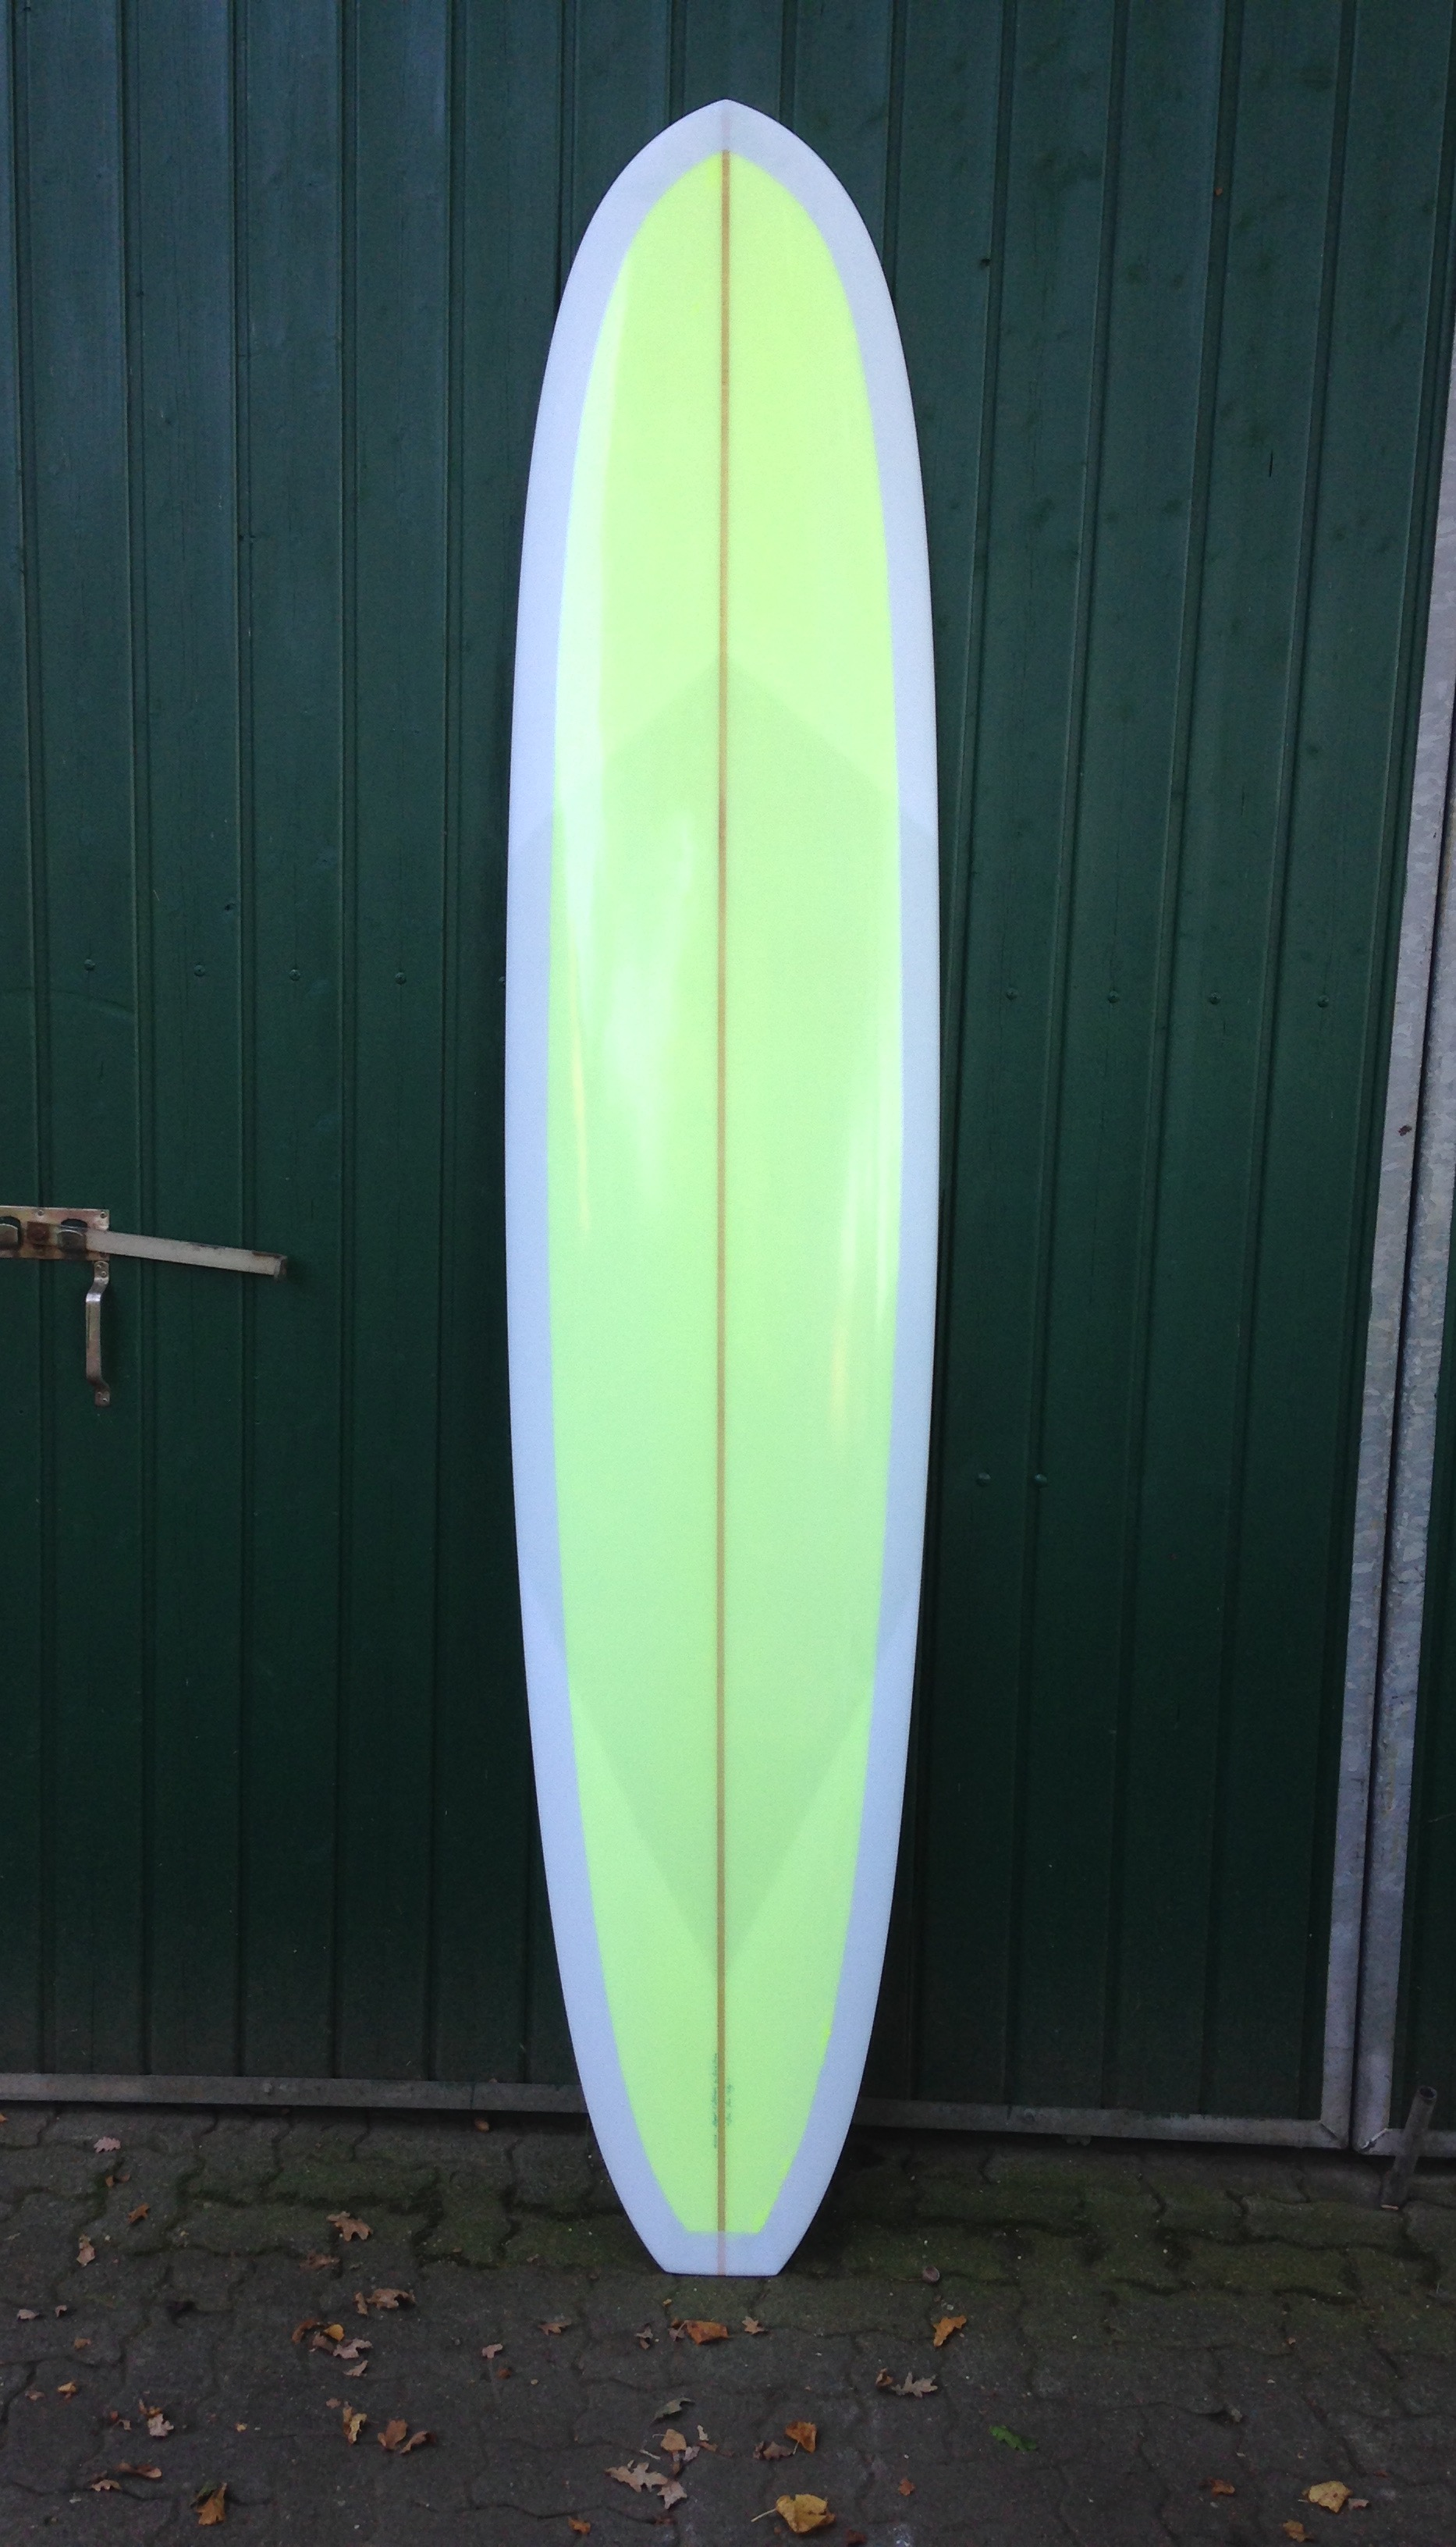 jones_shapes_brock_jones_surfboard_ondine.jpg